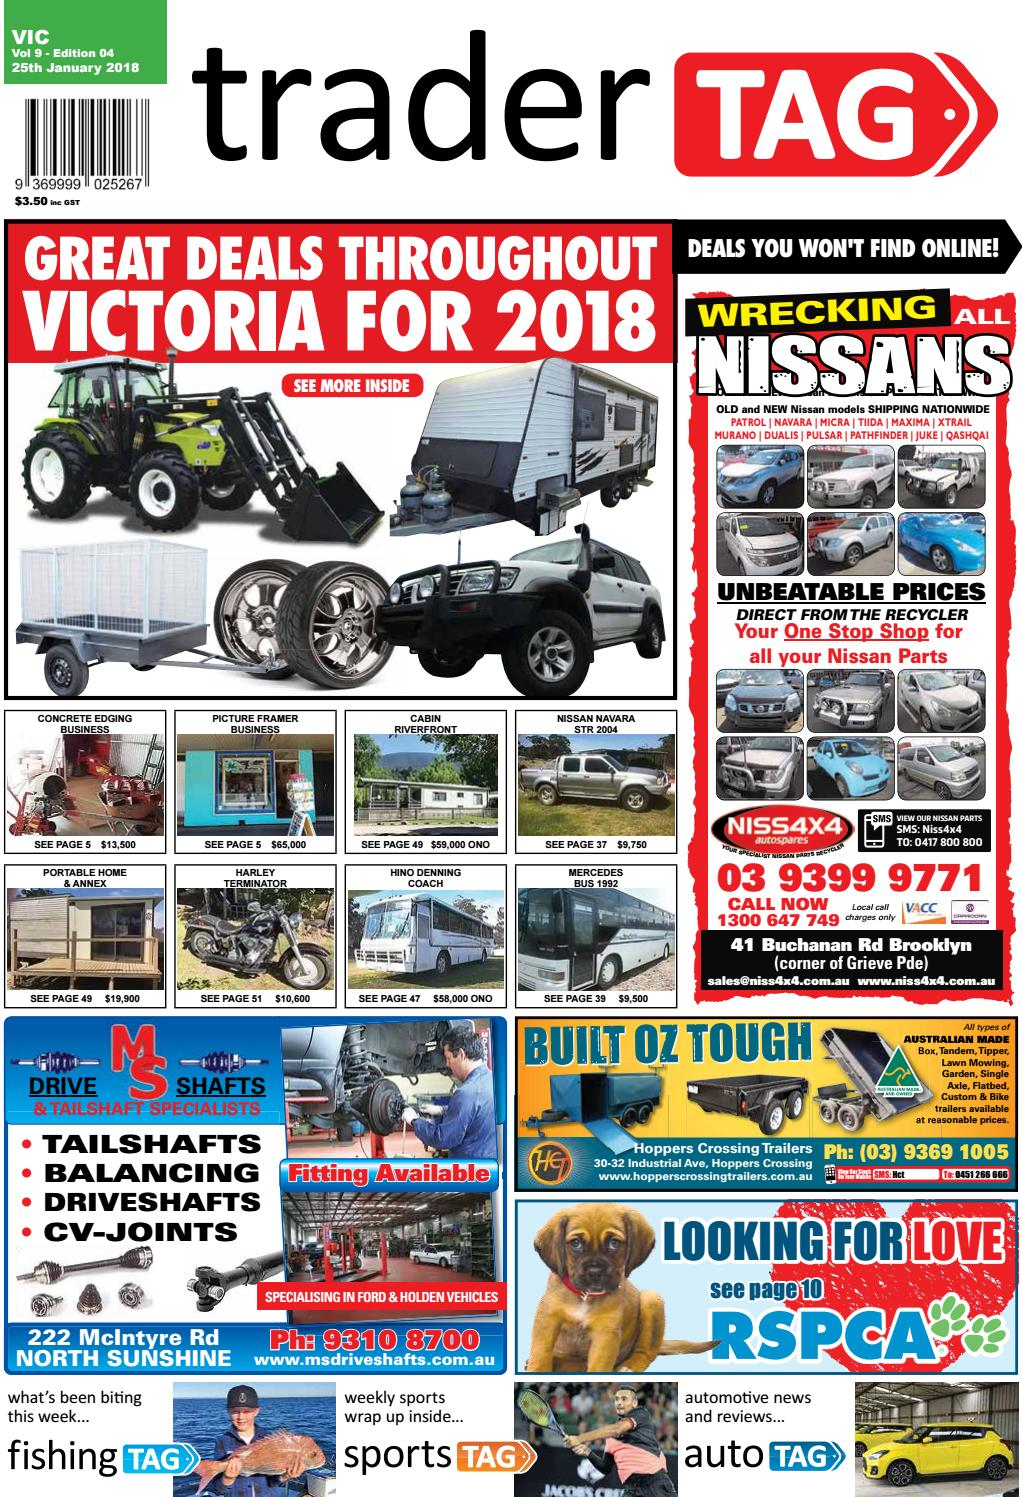 hight resolution of tradertag victoria edition 04 2018 by tradertag design issuu mini chopper wiring harness diagrams kia ceed gt 1966 mustang wiring